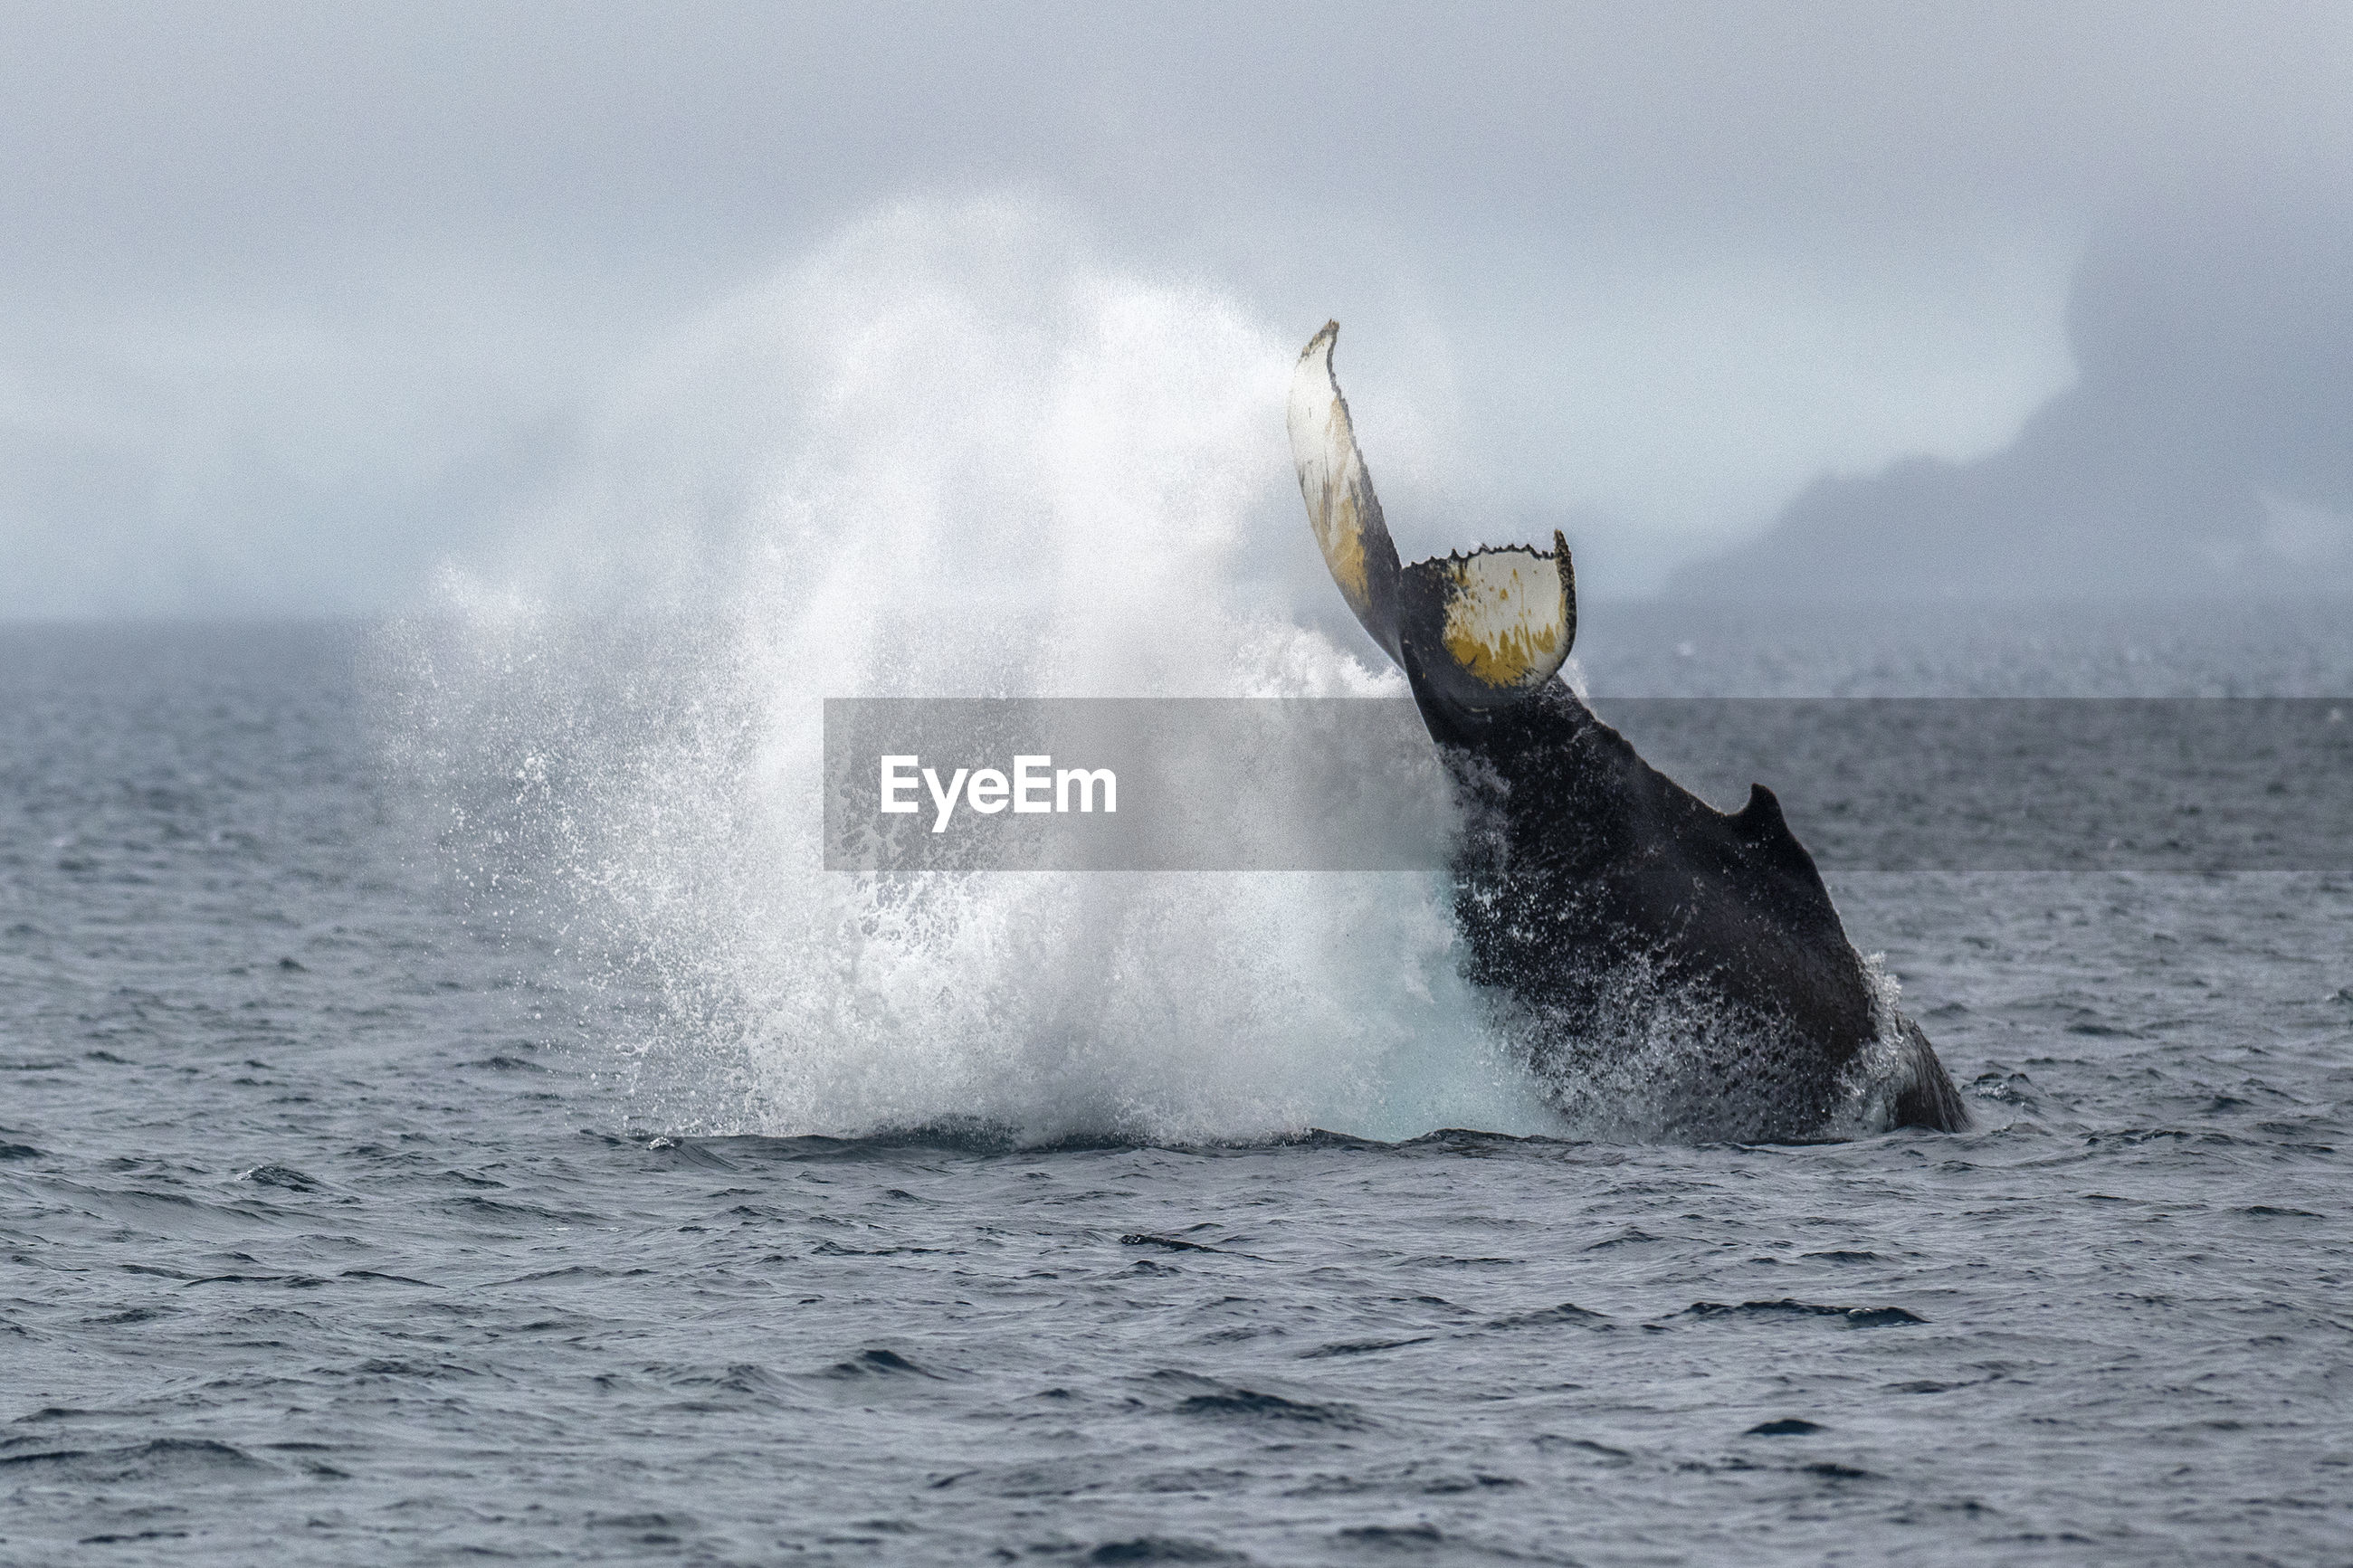 Humpback whale breaching the surface, palmer archipelago, off the coast of the antarctic peninsula.